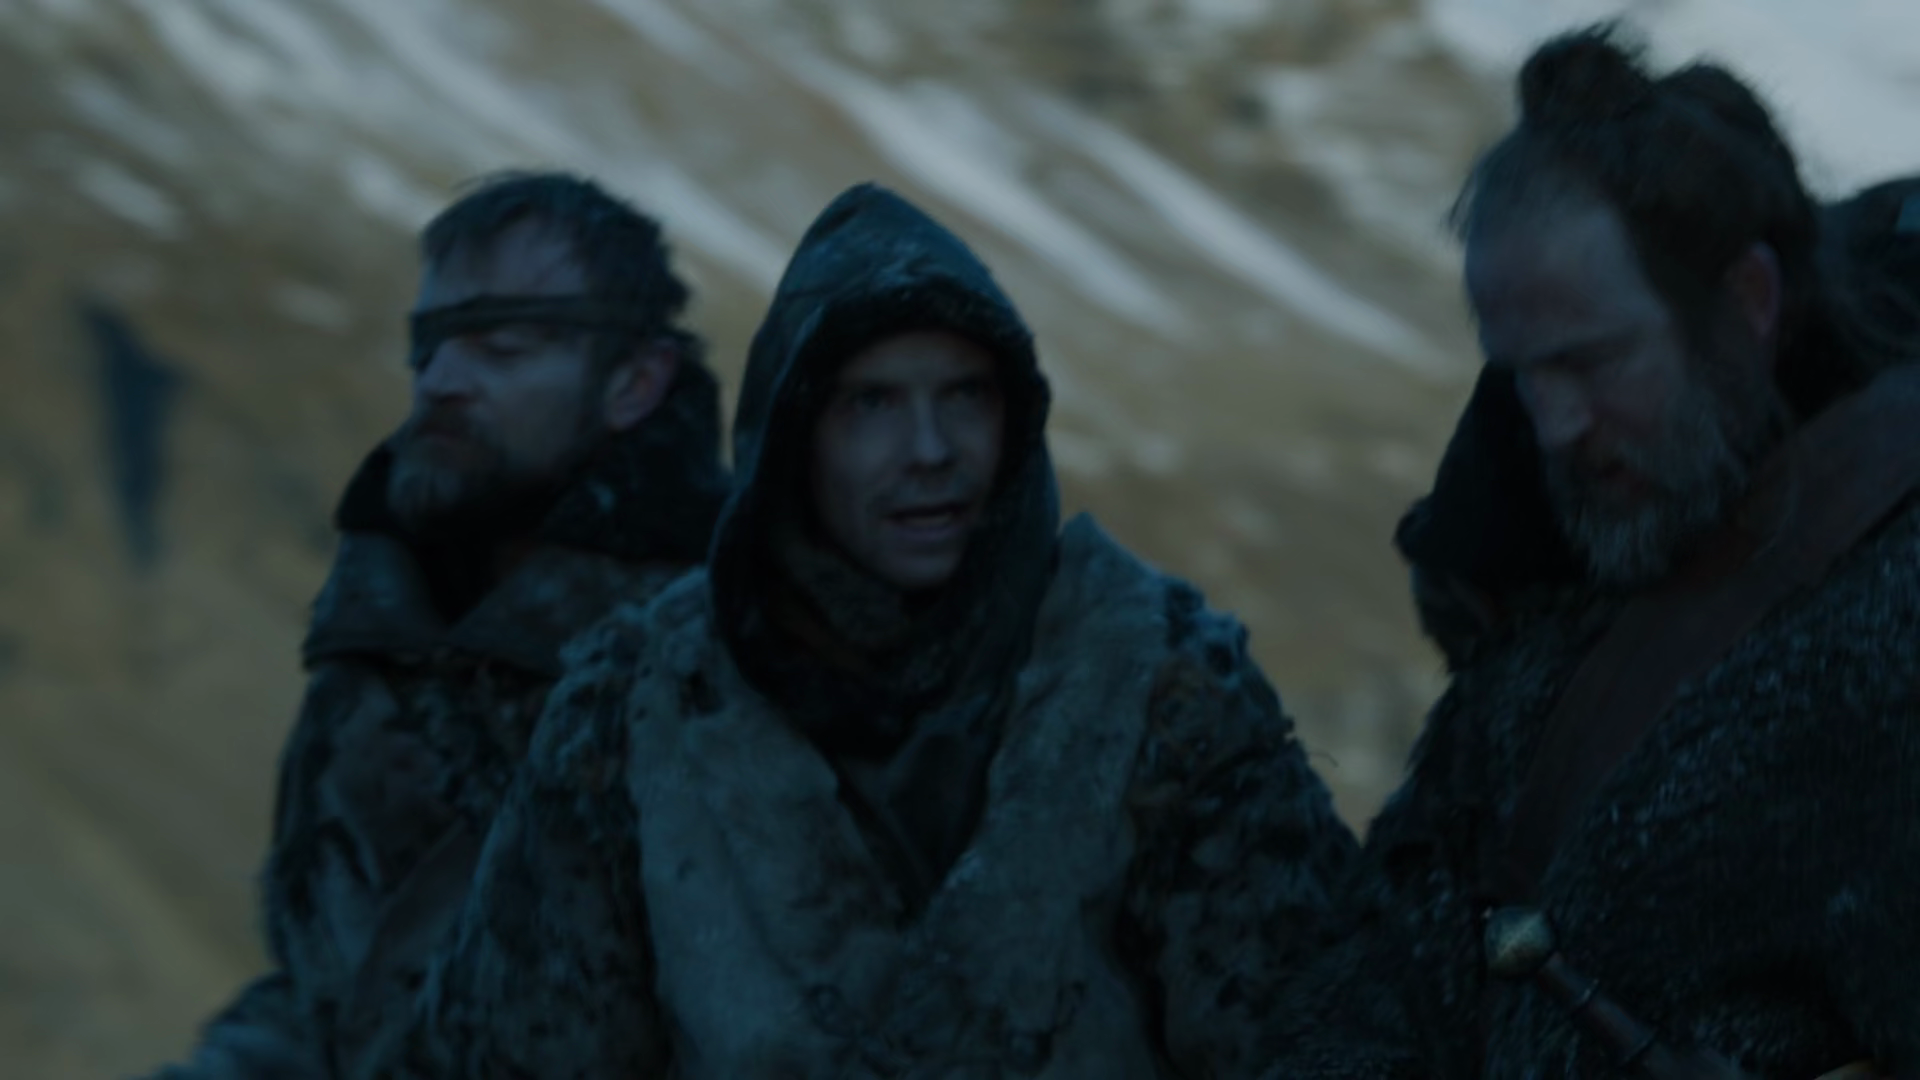 Game of Thrones S07E06 Beyond the Wall 1080p 10bit AMZN WEB-DL DD+5 1 x265 HEVC-MZABI